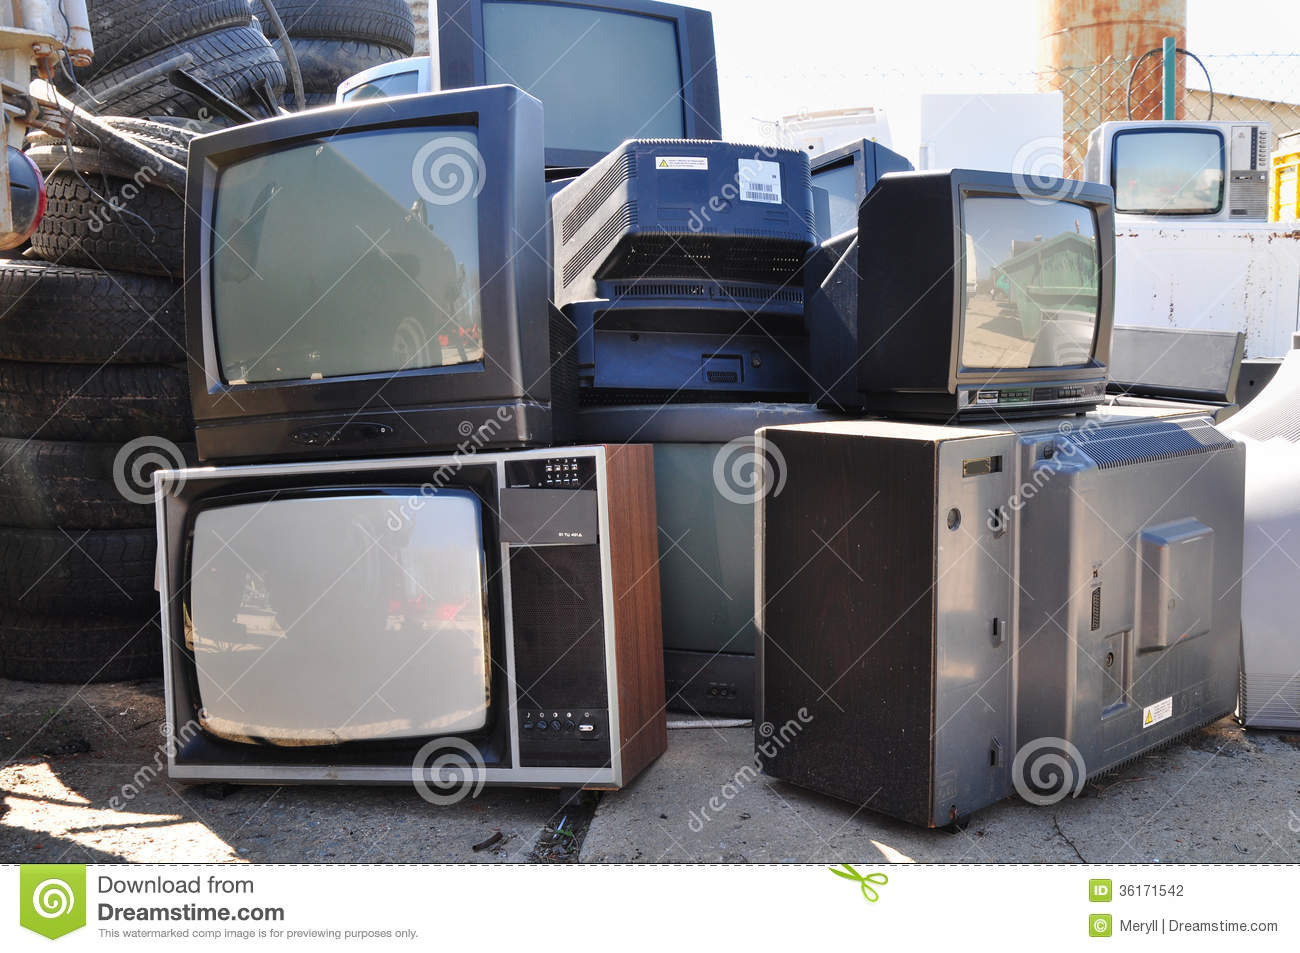 E Waste Essay E Waste Management Report Essay E Waste In Electronic  Old Tv Electronic Waste Stock Photography Image Royalty Stock Photo Old Tv Electronic  Waste Top English Essays also Examples Of Thesis Statements For English Essays  High School Entrance Essay